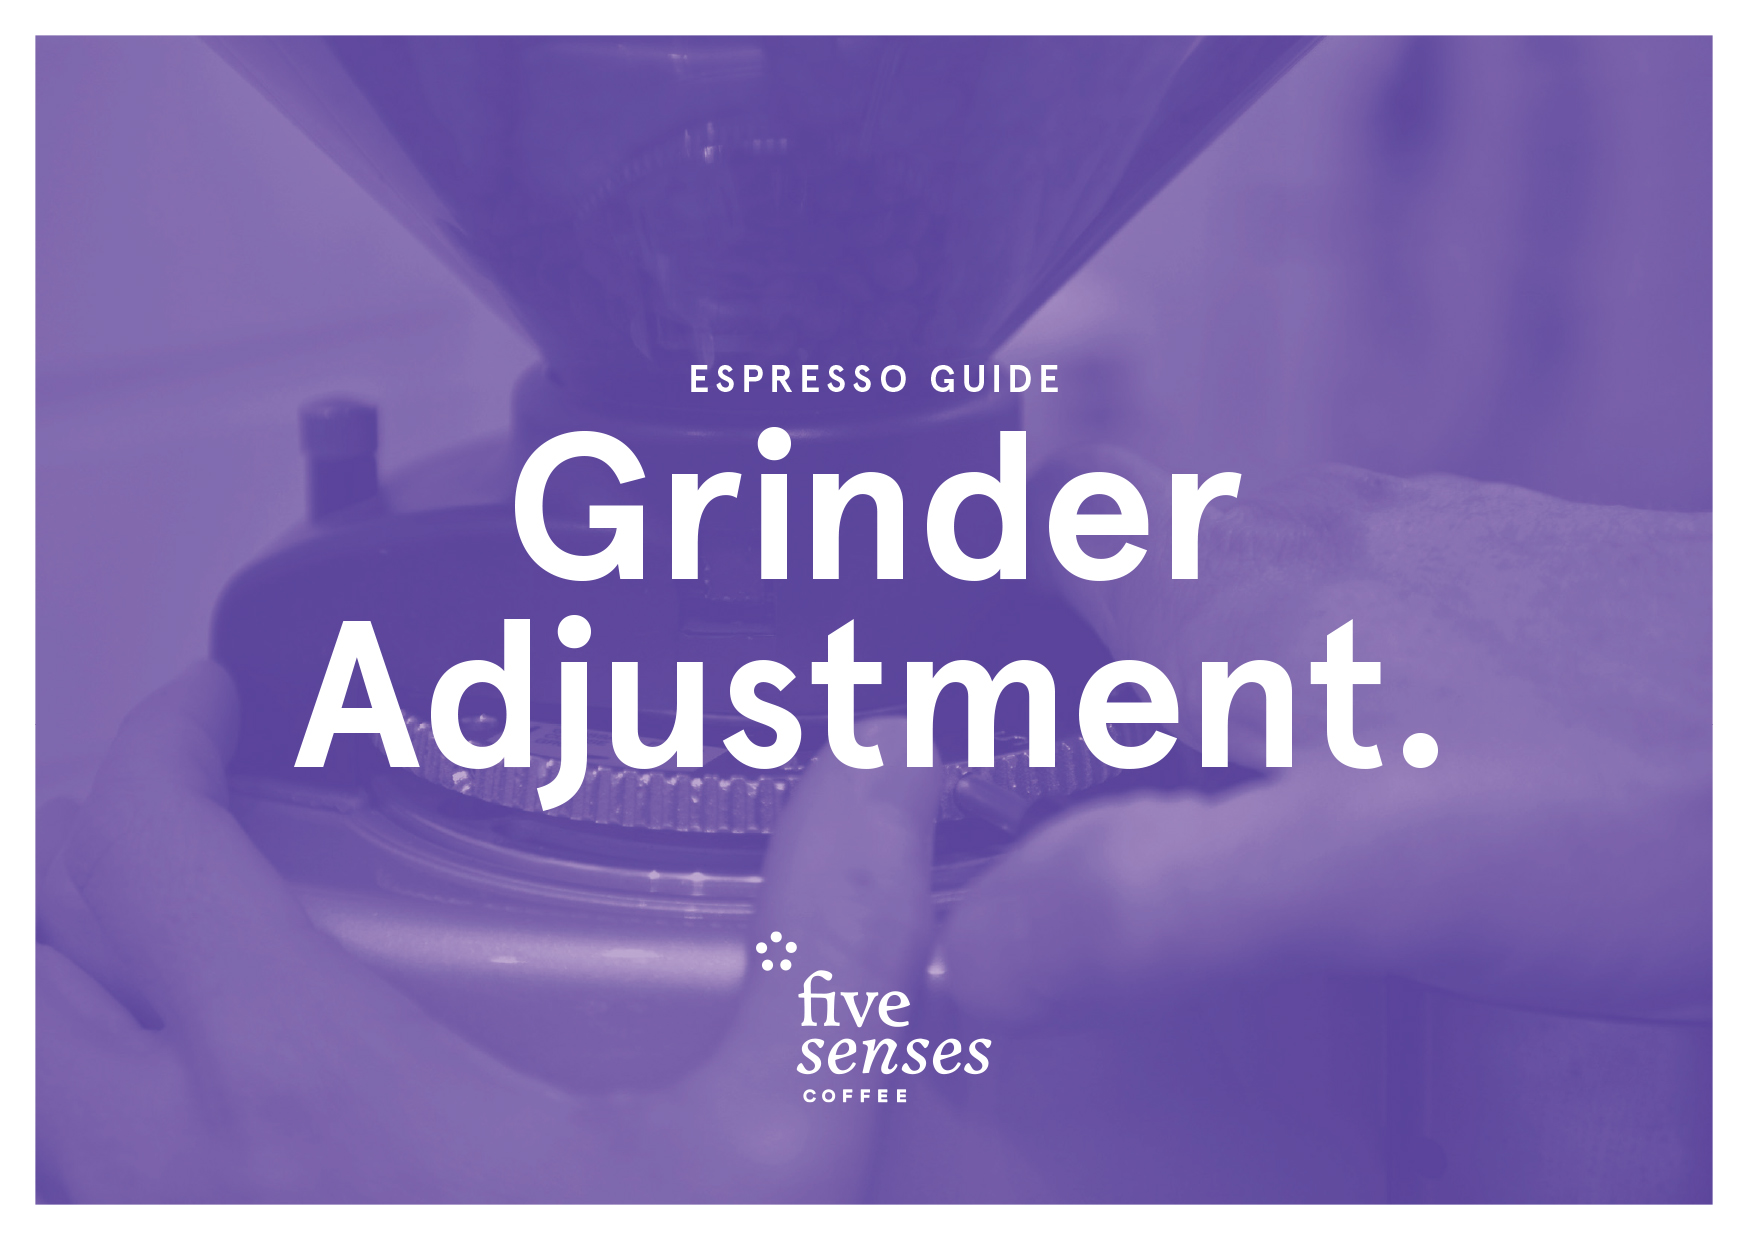 Grinder Adjustment